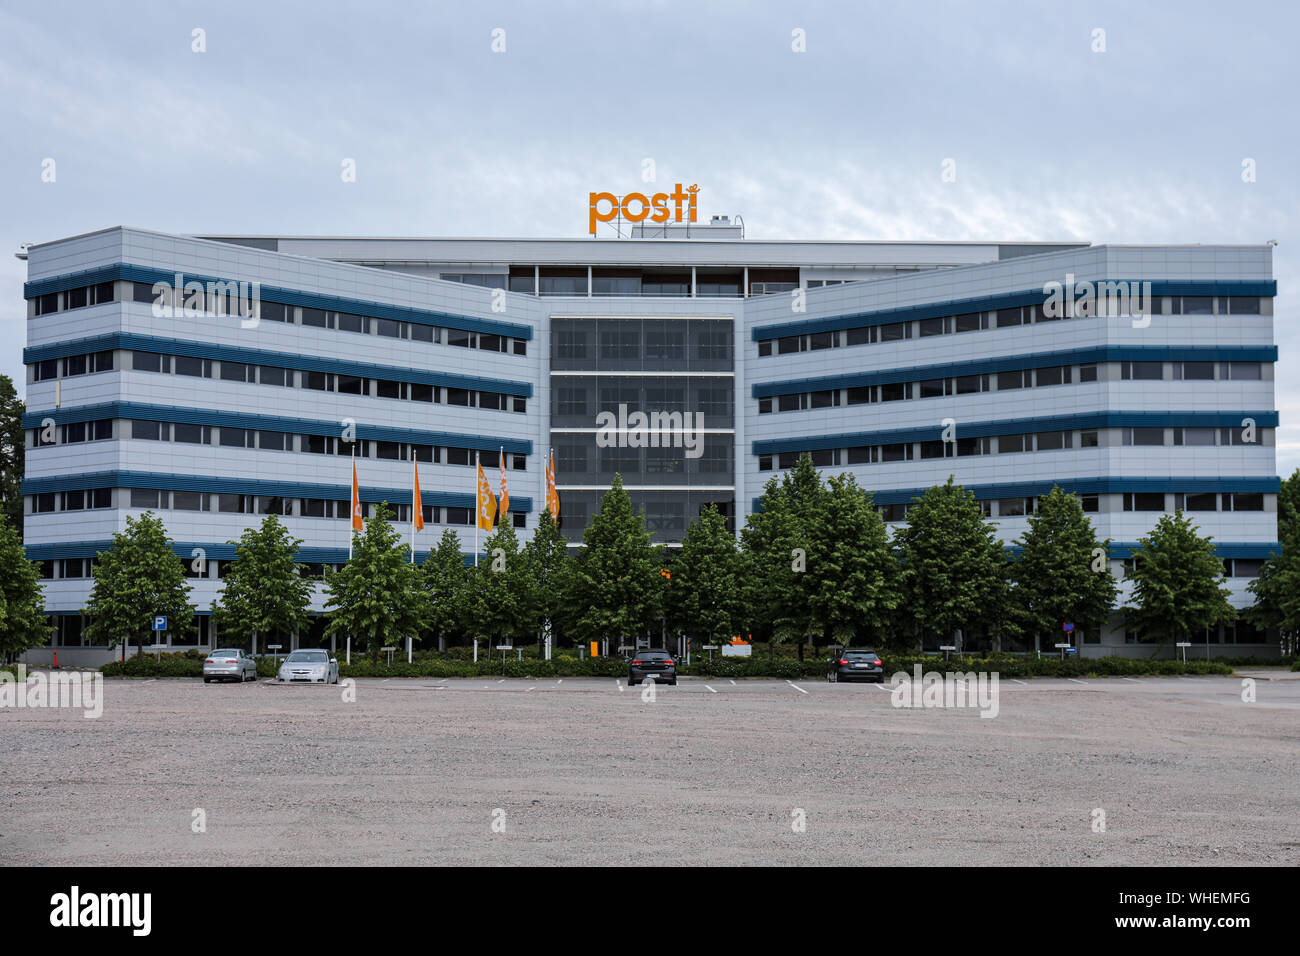 posti-group-headquarters-in-helsinki-fin